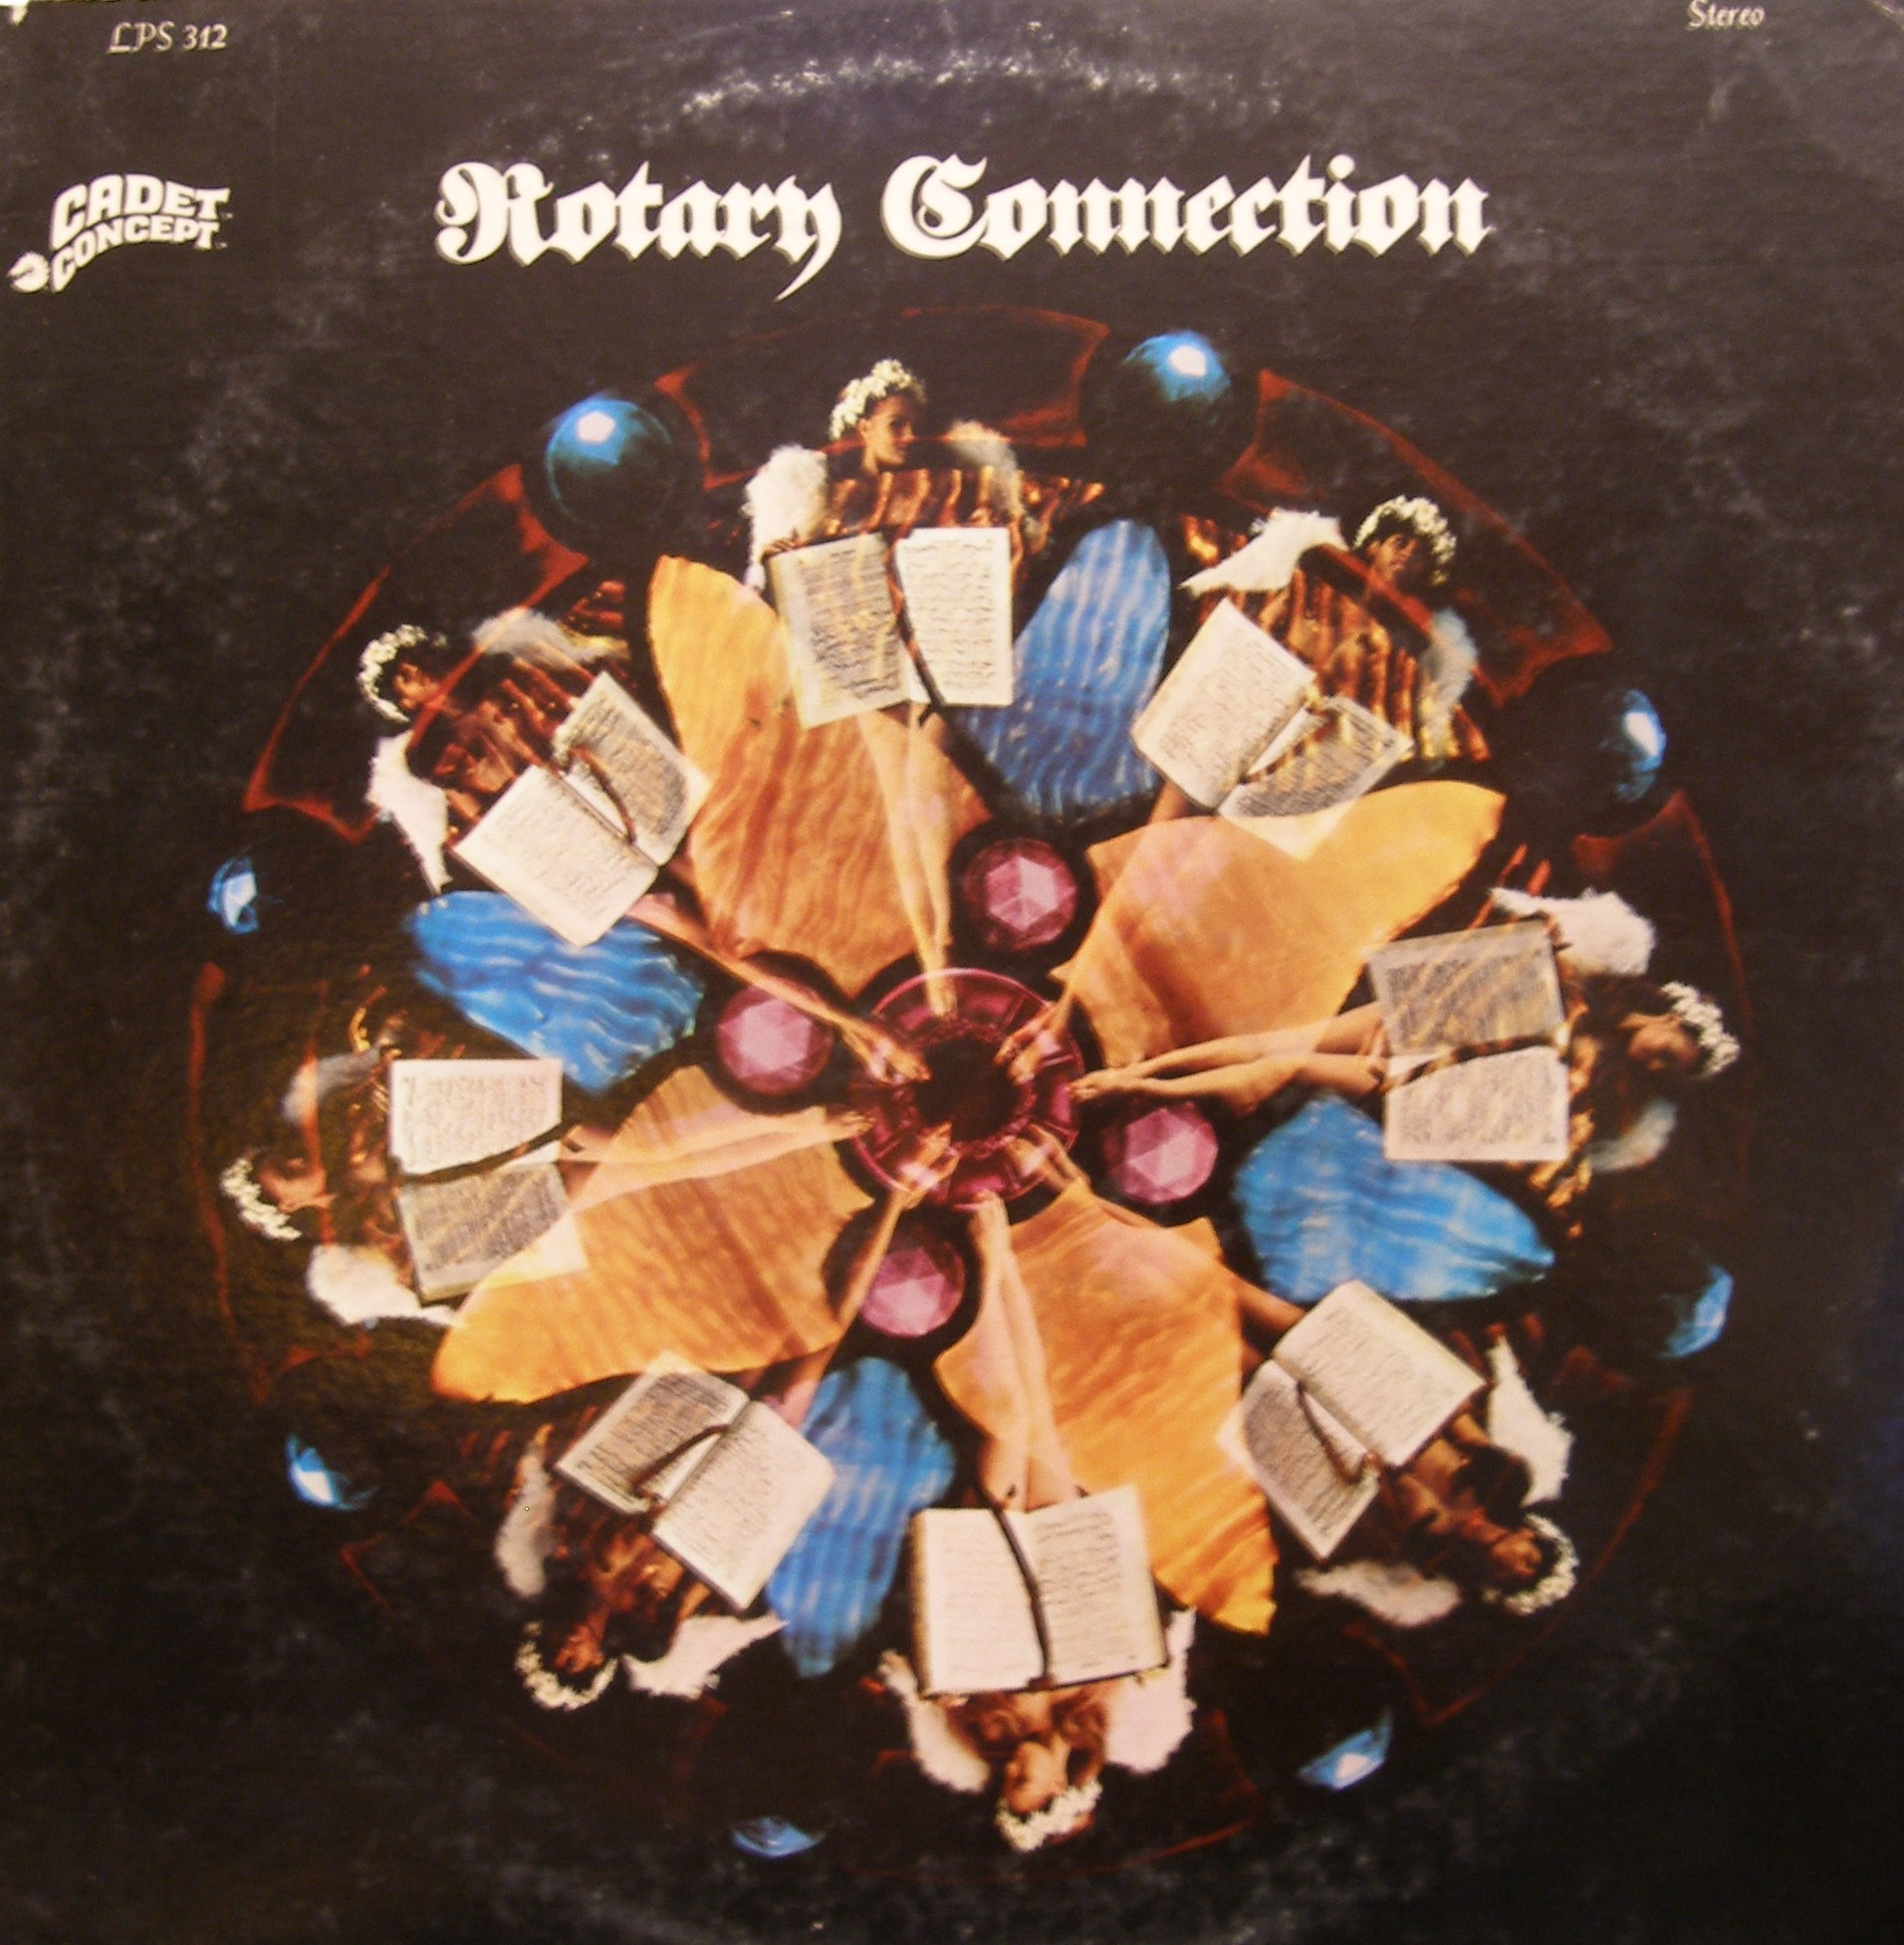 Rotary Connection Ruby Tuesday Soul Man